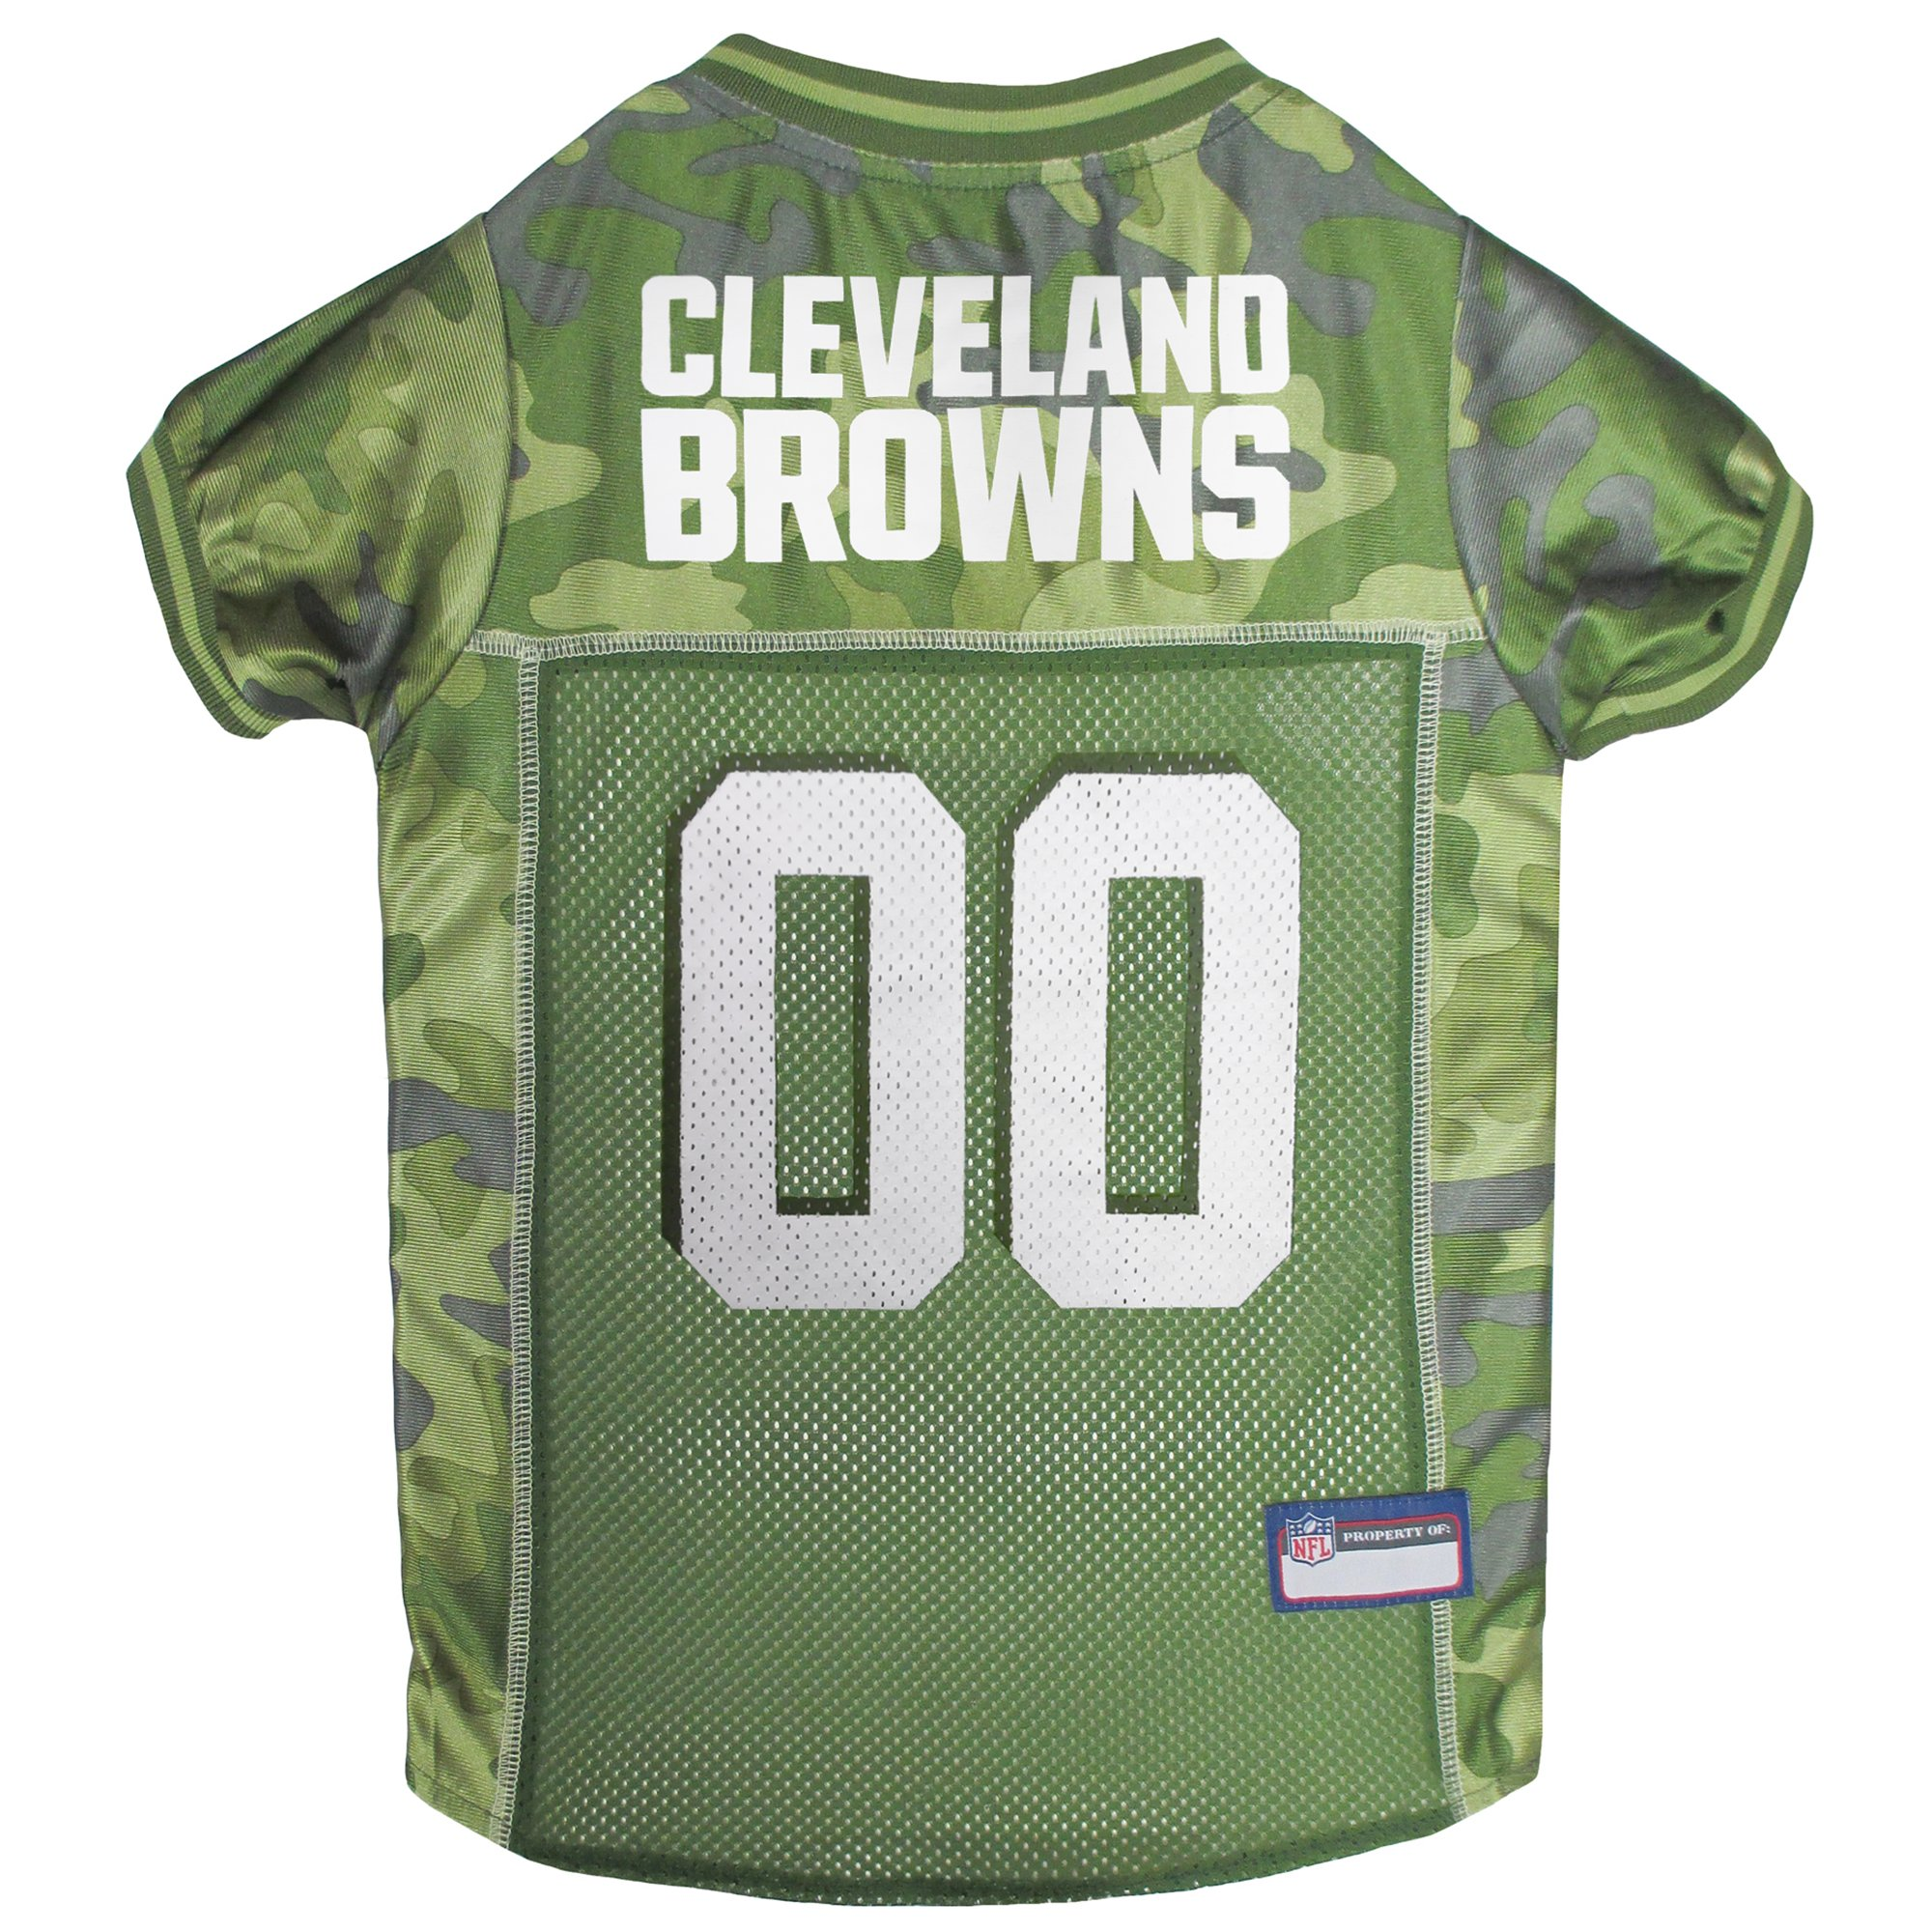 Image of Pets First Cleveland Browns Camo Jersey, Medium, Green